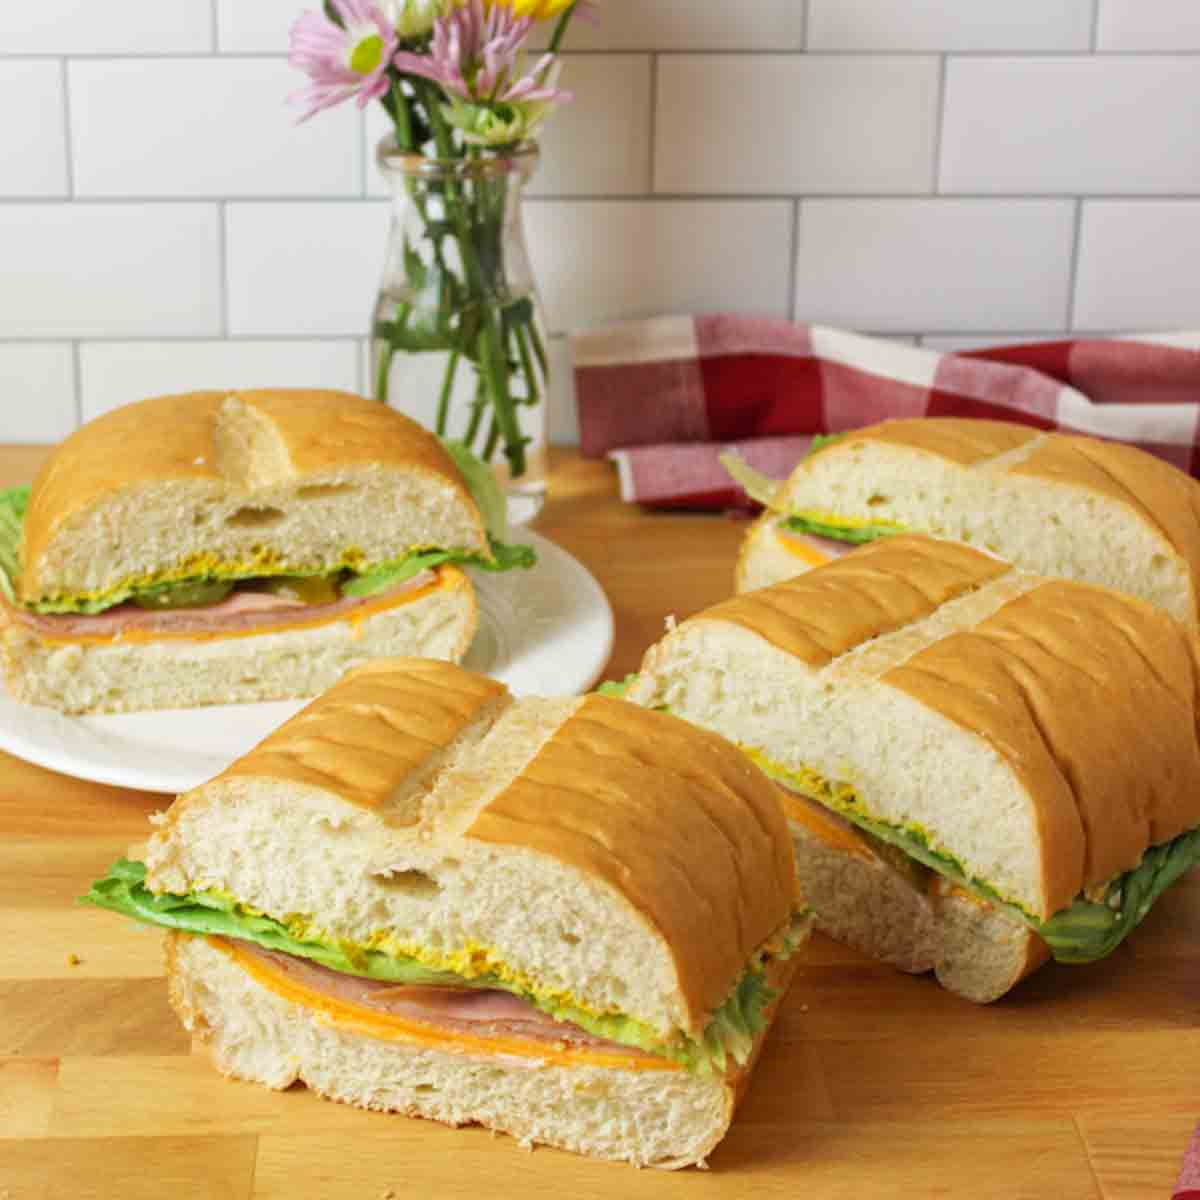 an upclose view of 4 slices of a giant sub sandwich with one in the background on a white plate